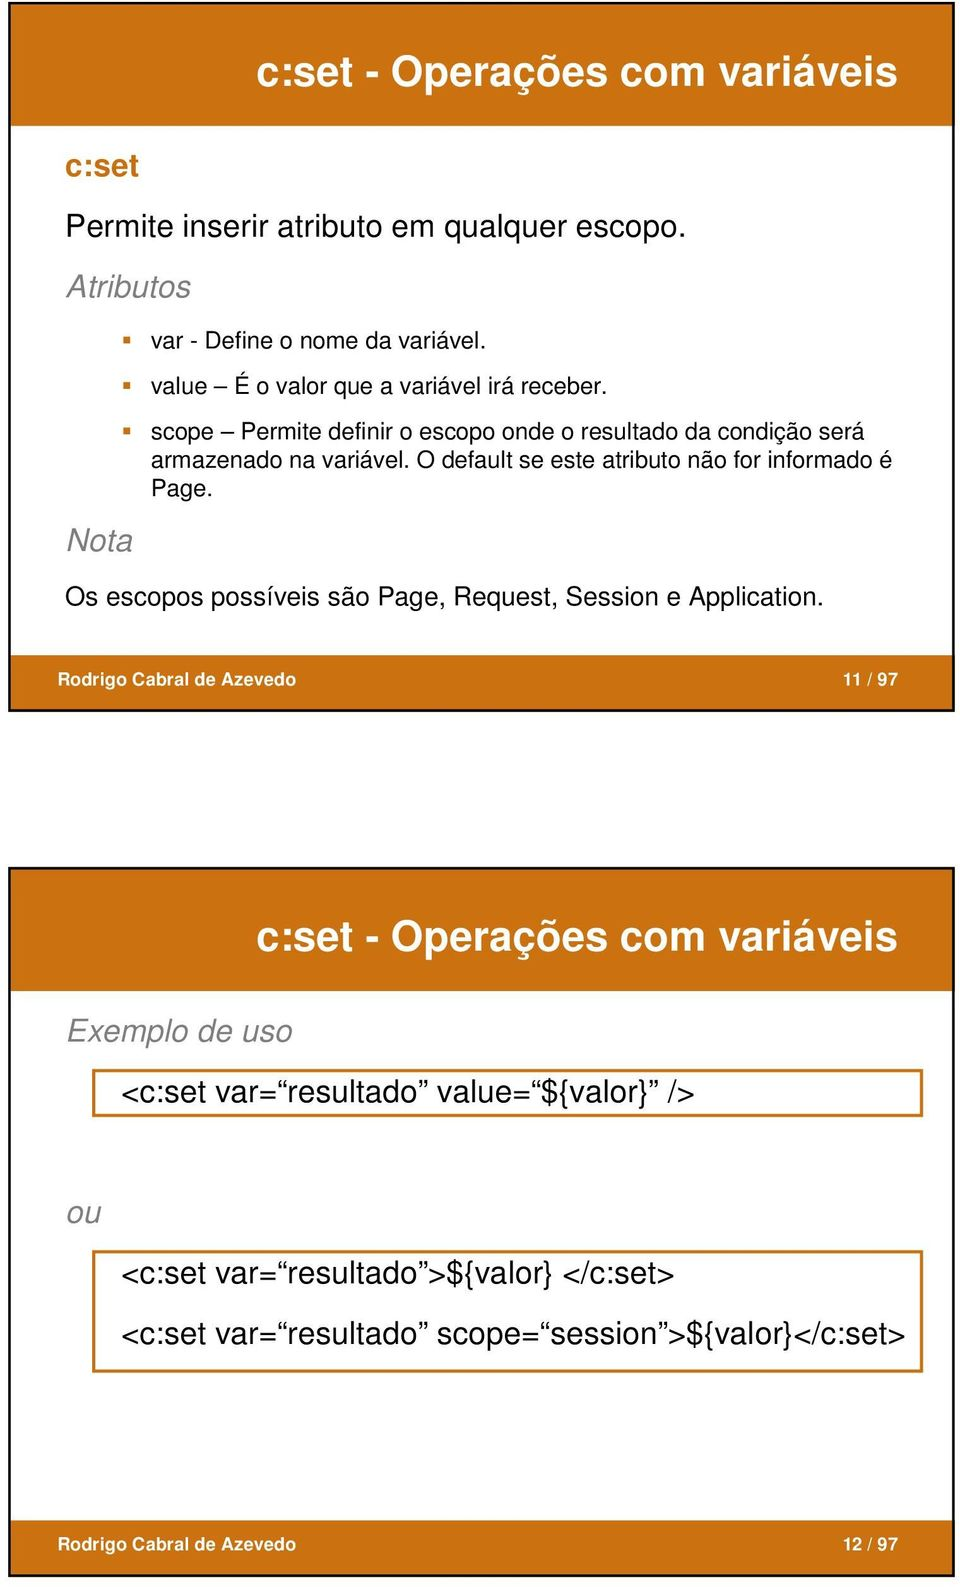 O default se este atributo não for informado é Page. Os escopos possíveis são Page, Request, Session e Application.